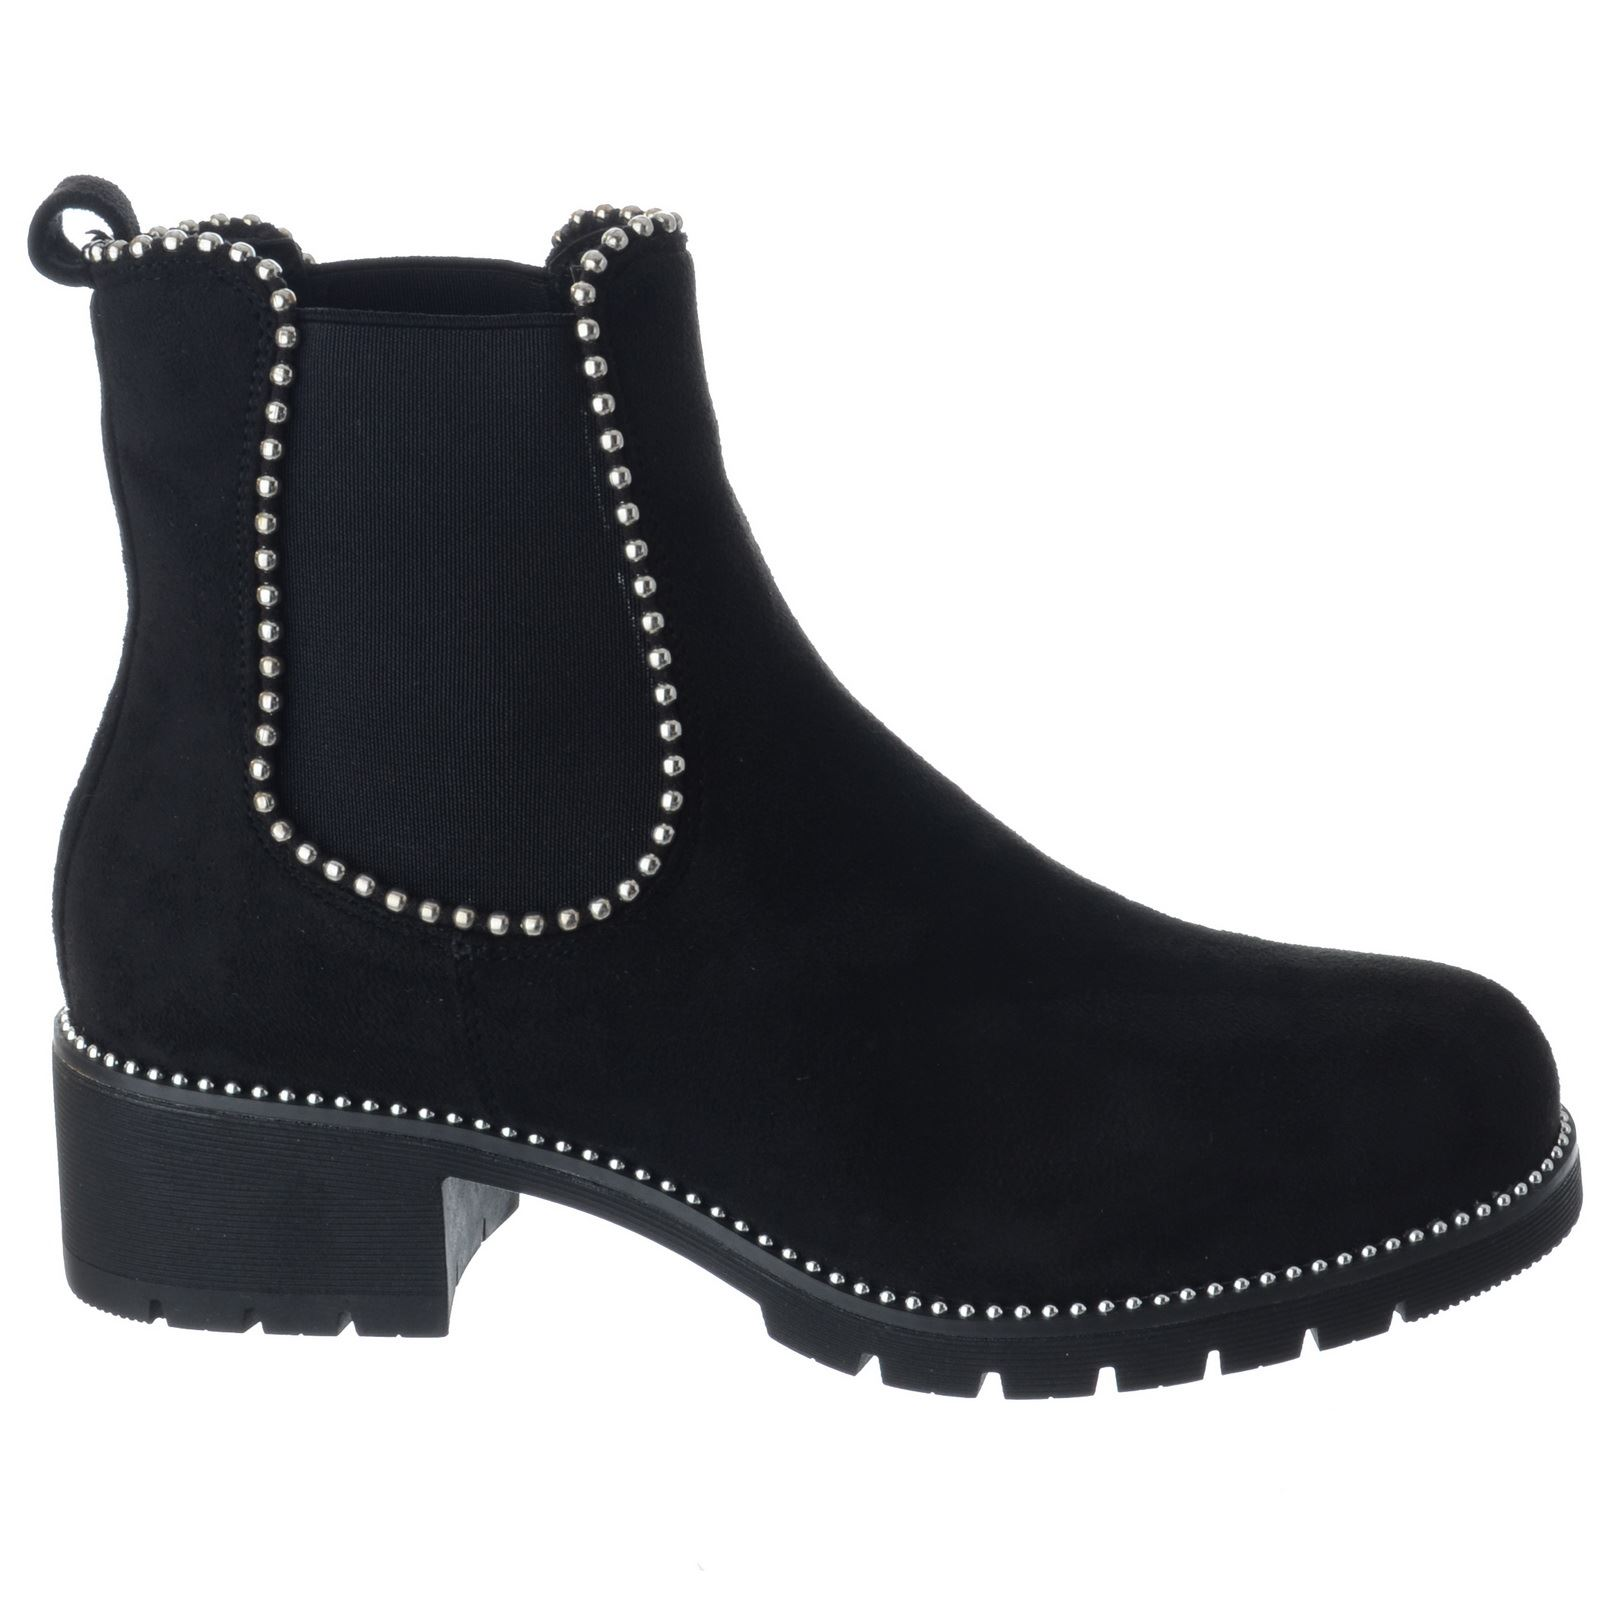 LADIES WOMENS GIRLS FLAT CHUNKY BIKER STUDDED SHOES CHELSEA ANKLE BOOTS SIZE